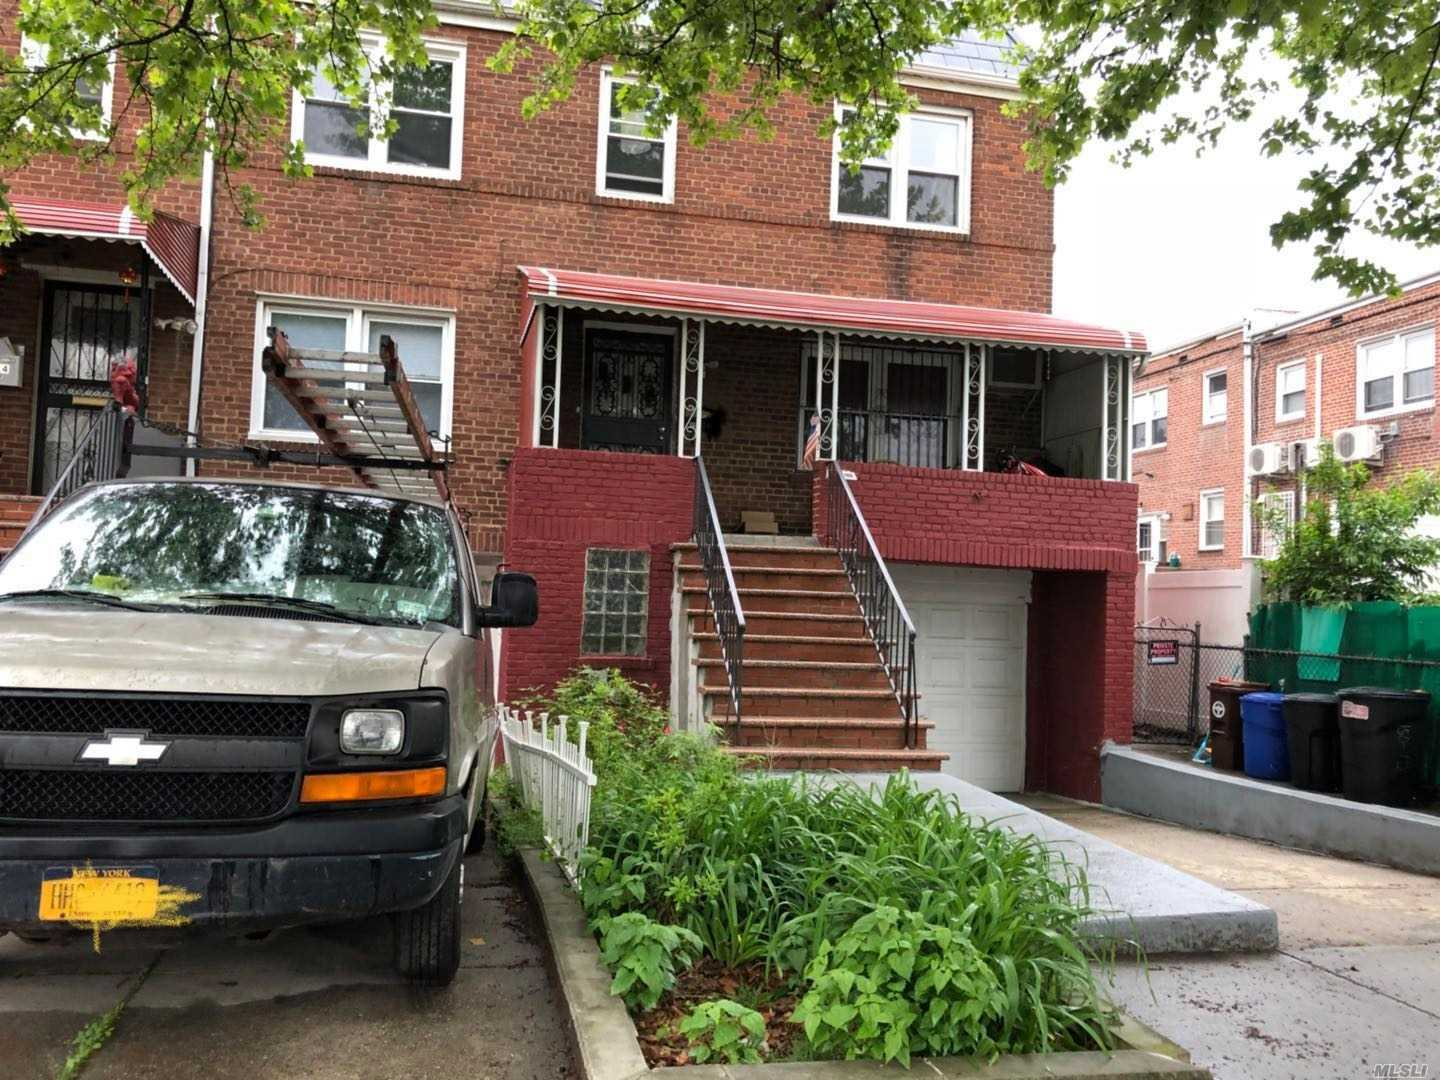 Great Location. 2 Family Corner Townhouse. Window In Every Room, Bright Exposure. 8 Minutes To Supermarkets. Garage And Private Driveway. Good Rental Income. Won't Last.